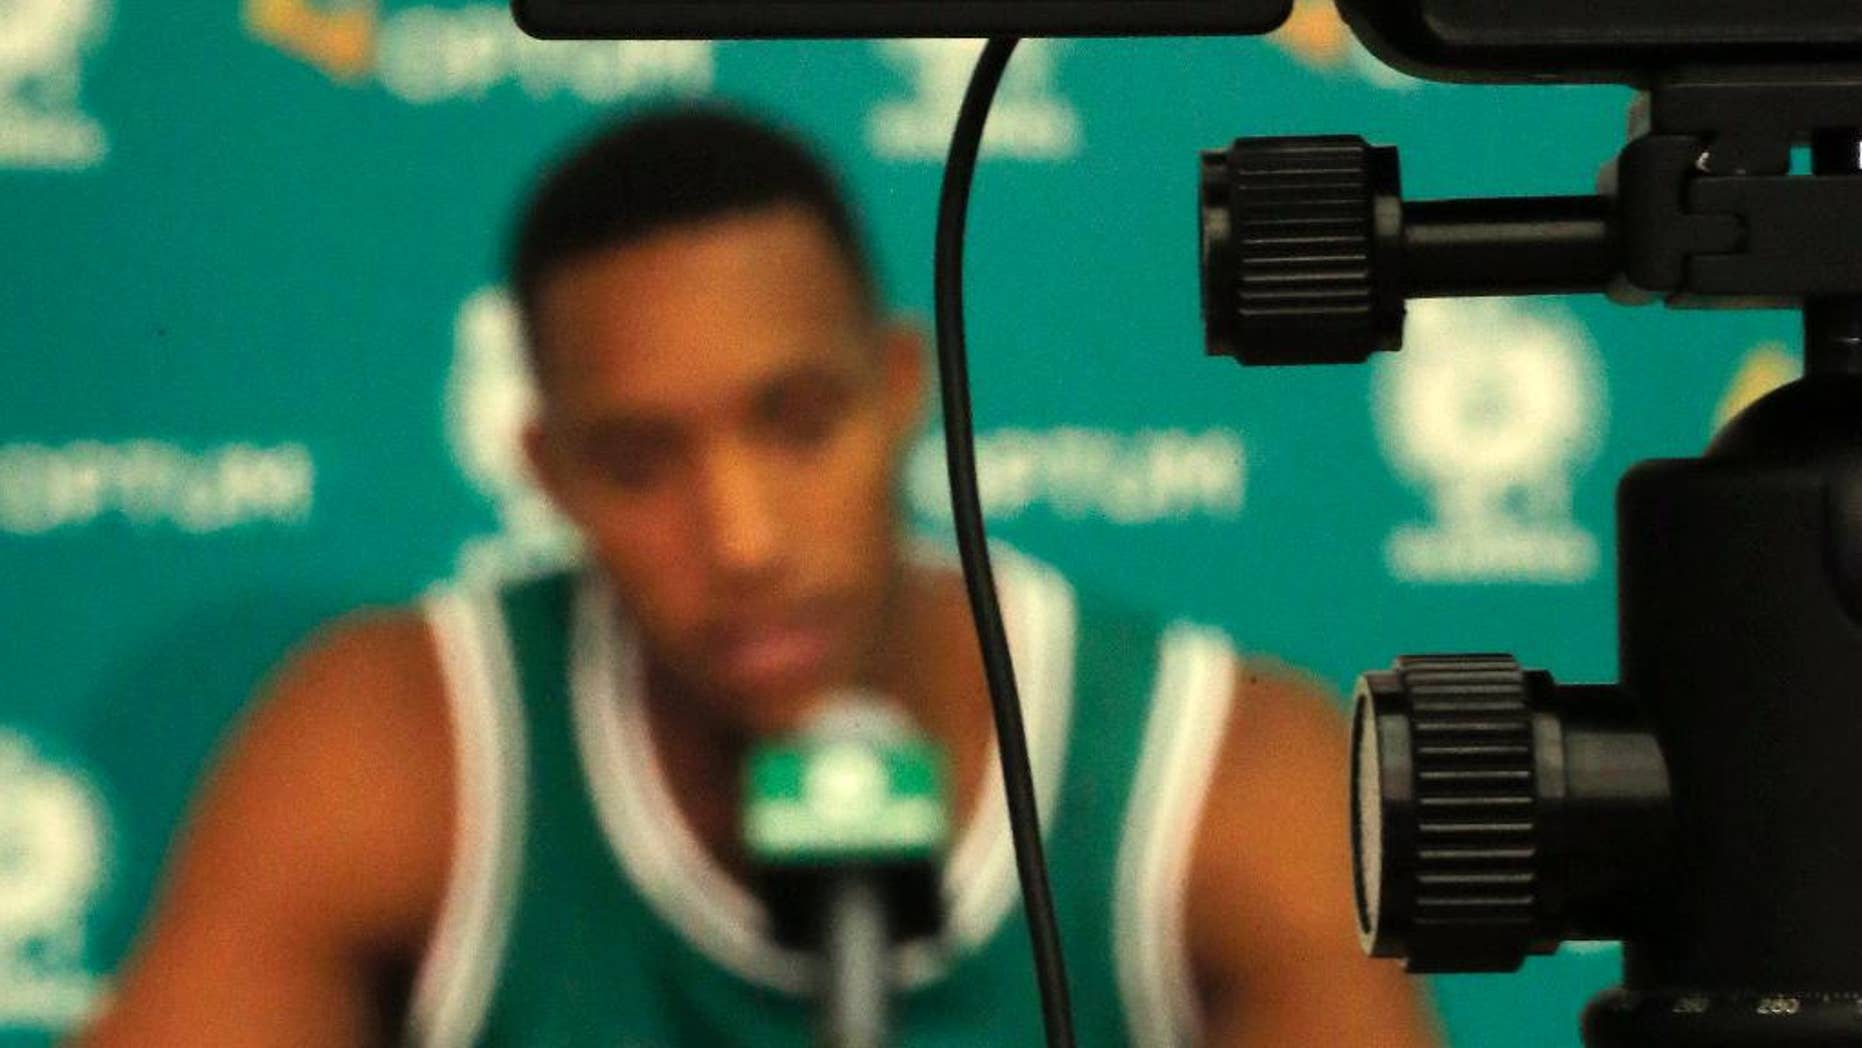 Boston Celtics guard Evan Turner, displayed on the screen of a video camara, speaks to reporters during NBA basketball media day in Waltham, Mass., Monday, Sept. 29, 2014. (AP Photo/Elise Amendola)